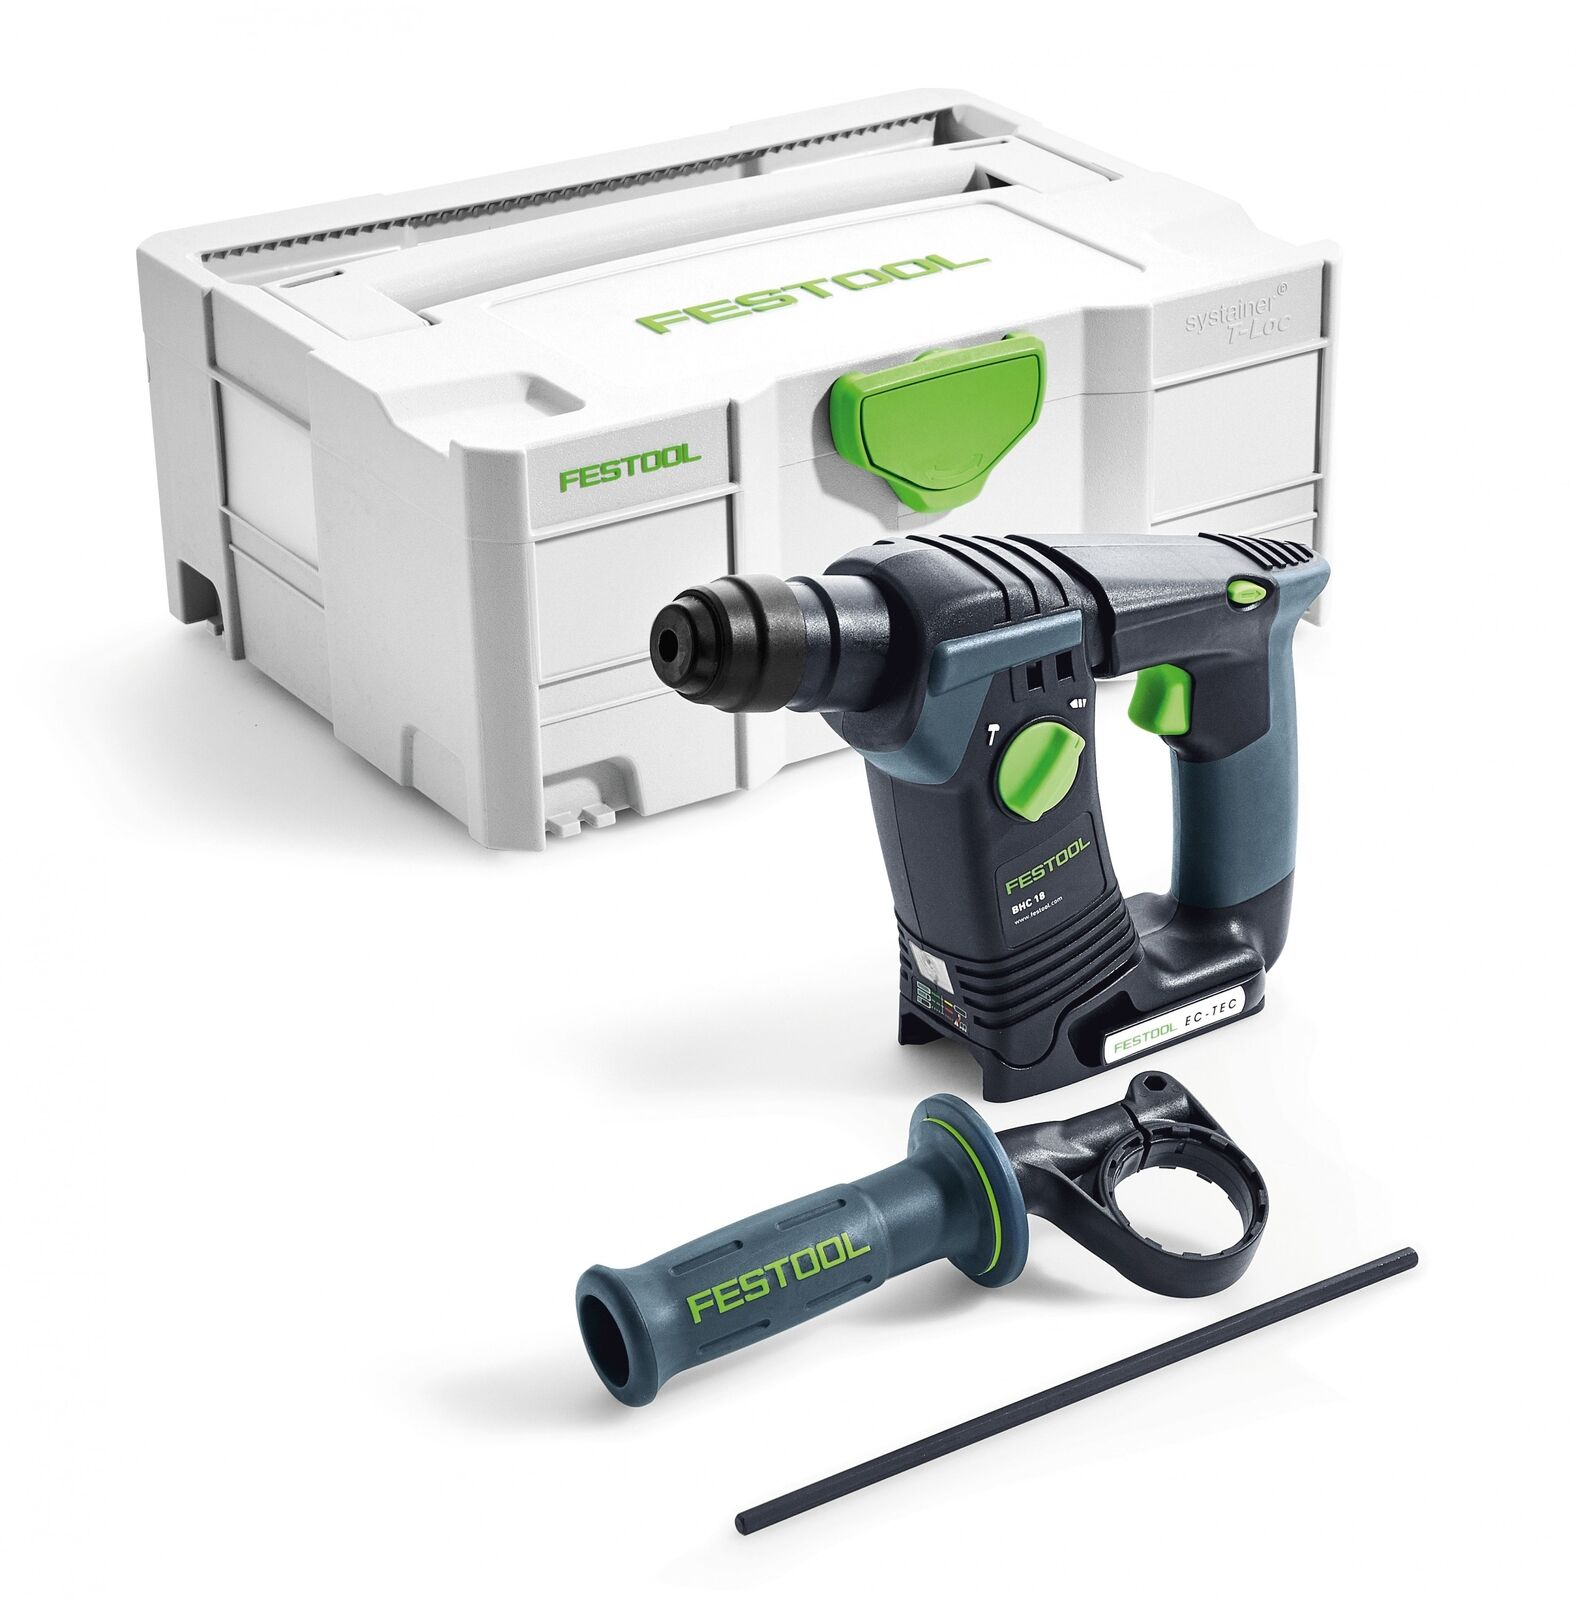 festool akku bohrhammer bhc 18 li basic 574723 eur 313 00 picclick it. Black Bedroom Furniture Sets. Home Design Ideas